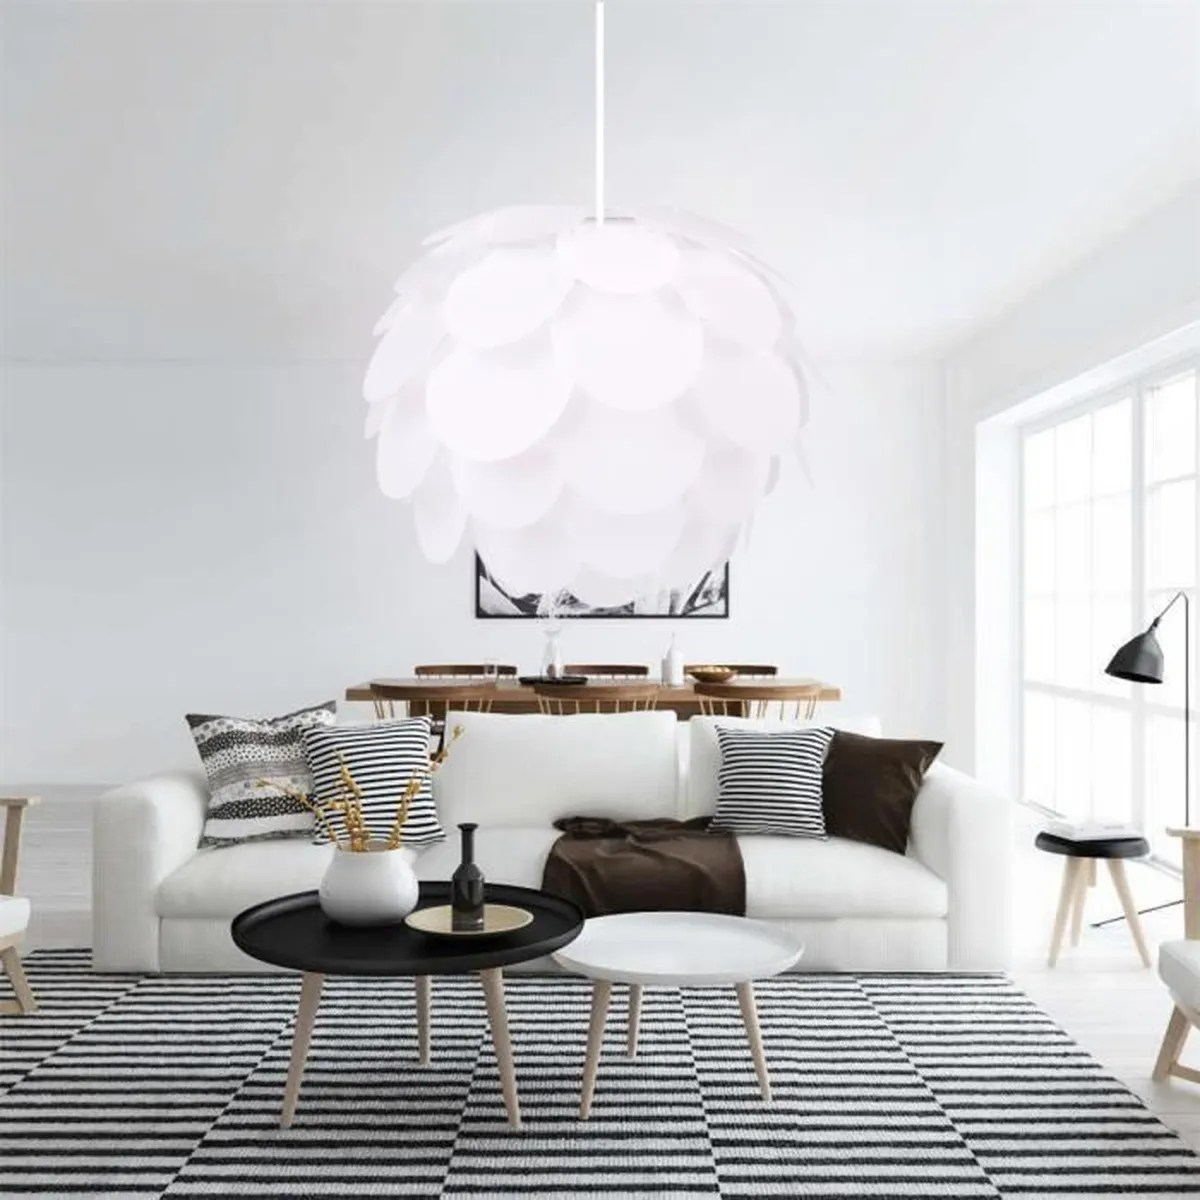 Lustre Pour Grand Plafond Excelvan Creative Diy Lustre Suspension Lumière Lampe Art